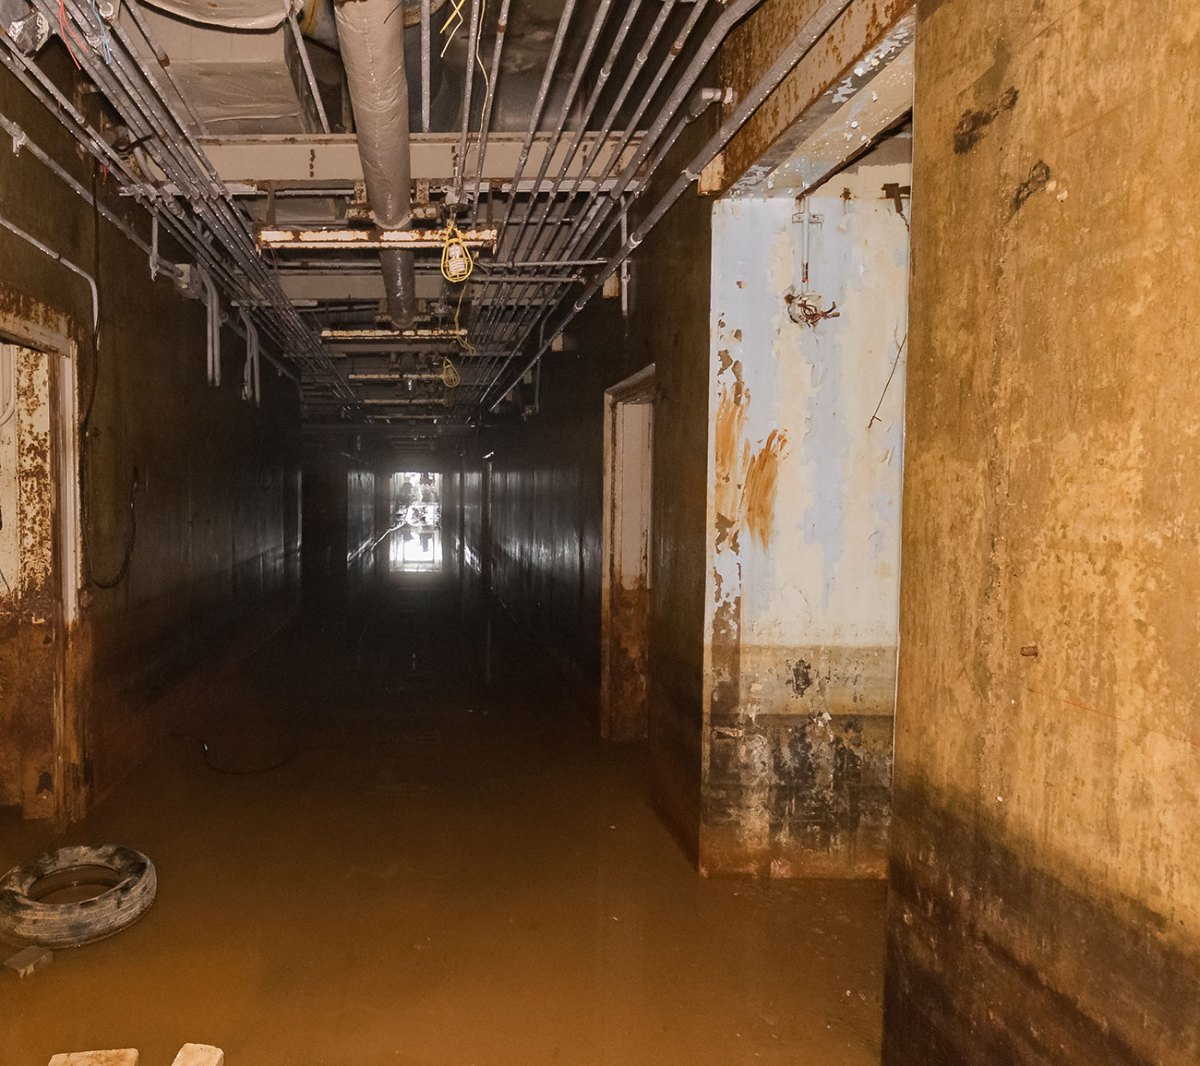 Water in the hallway